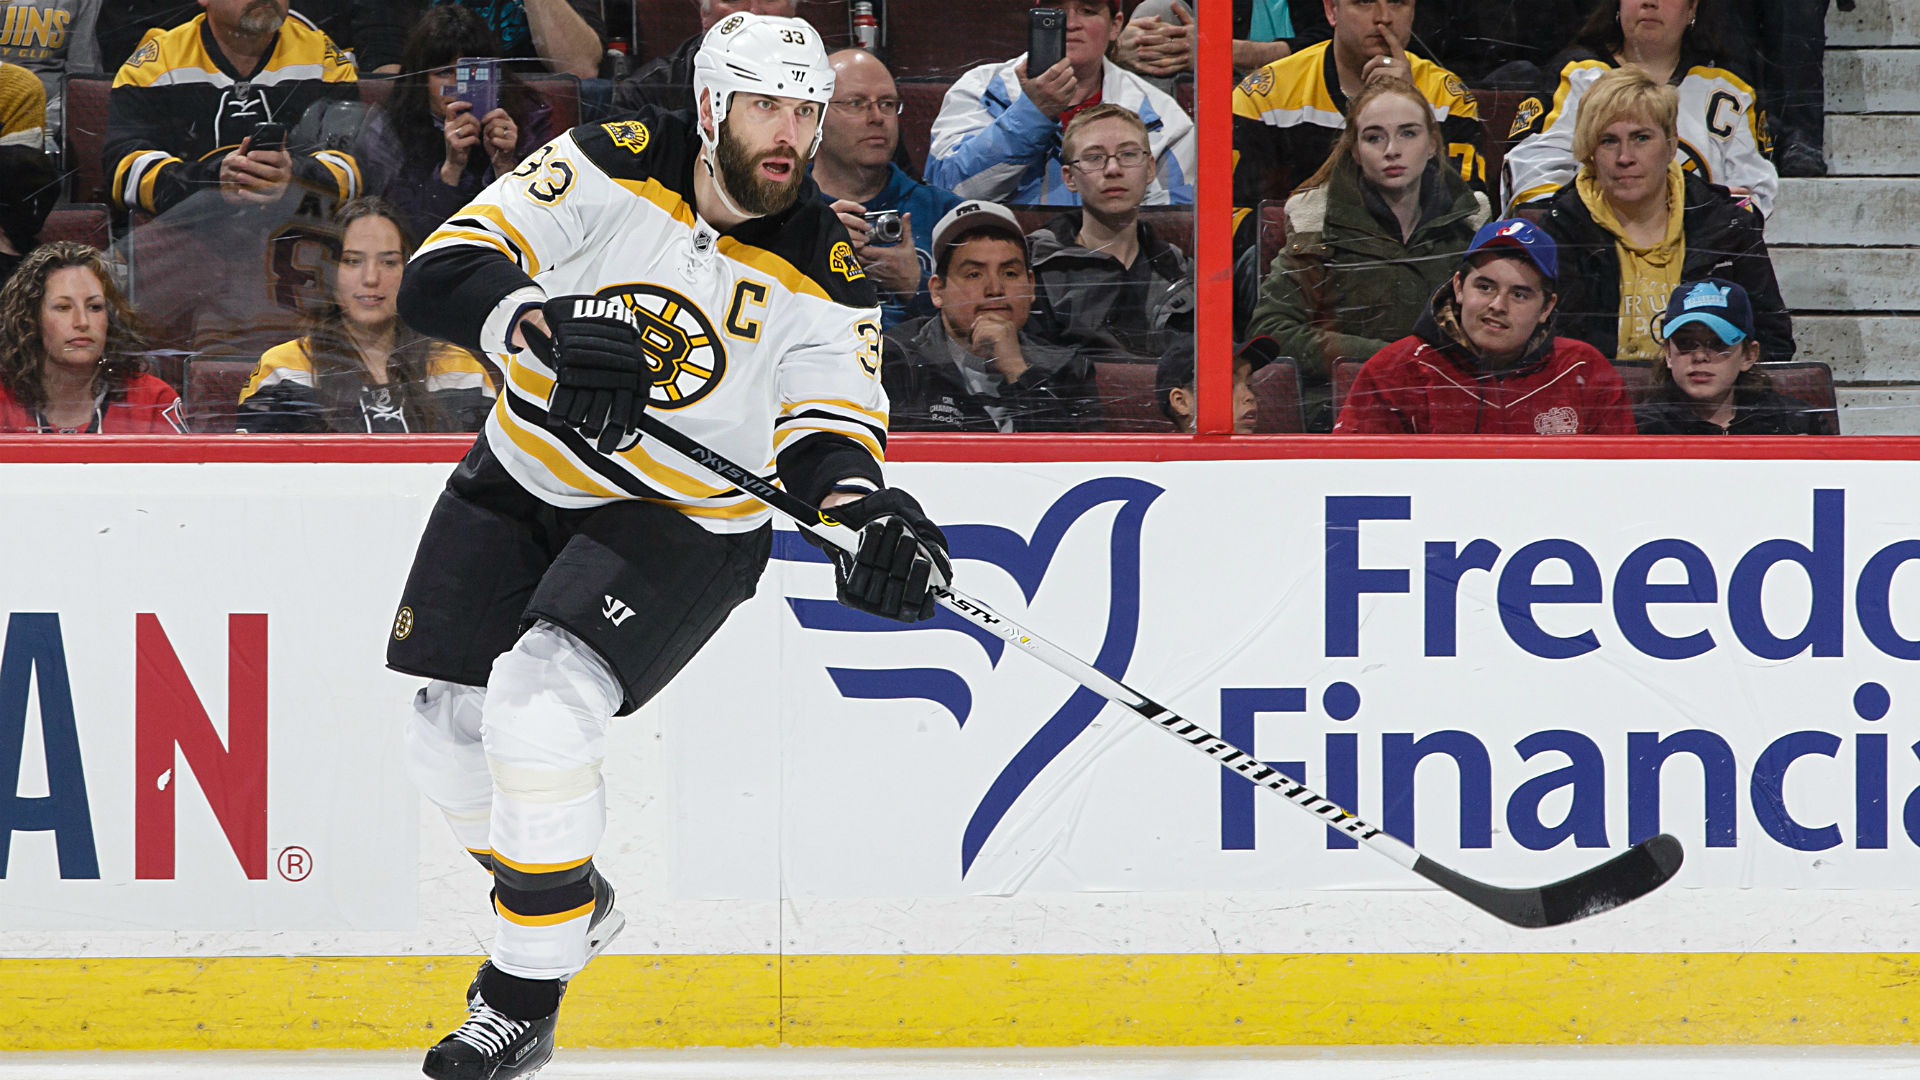 Boston Bruins sign Zdeno Chara to one-year contract extension